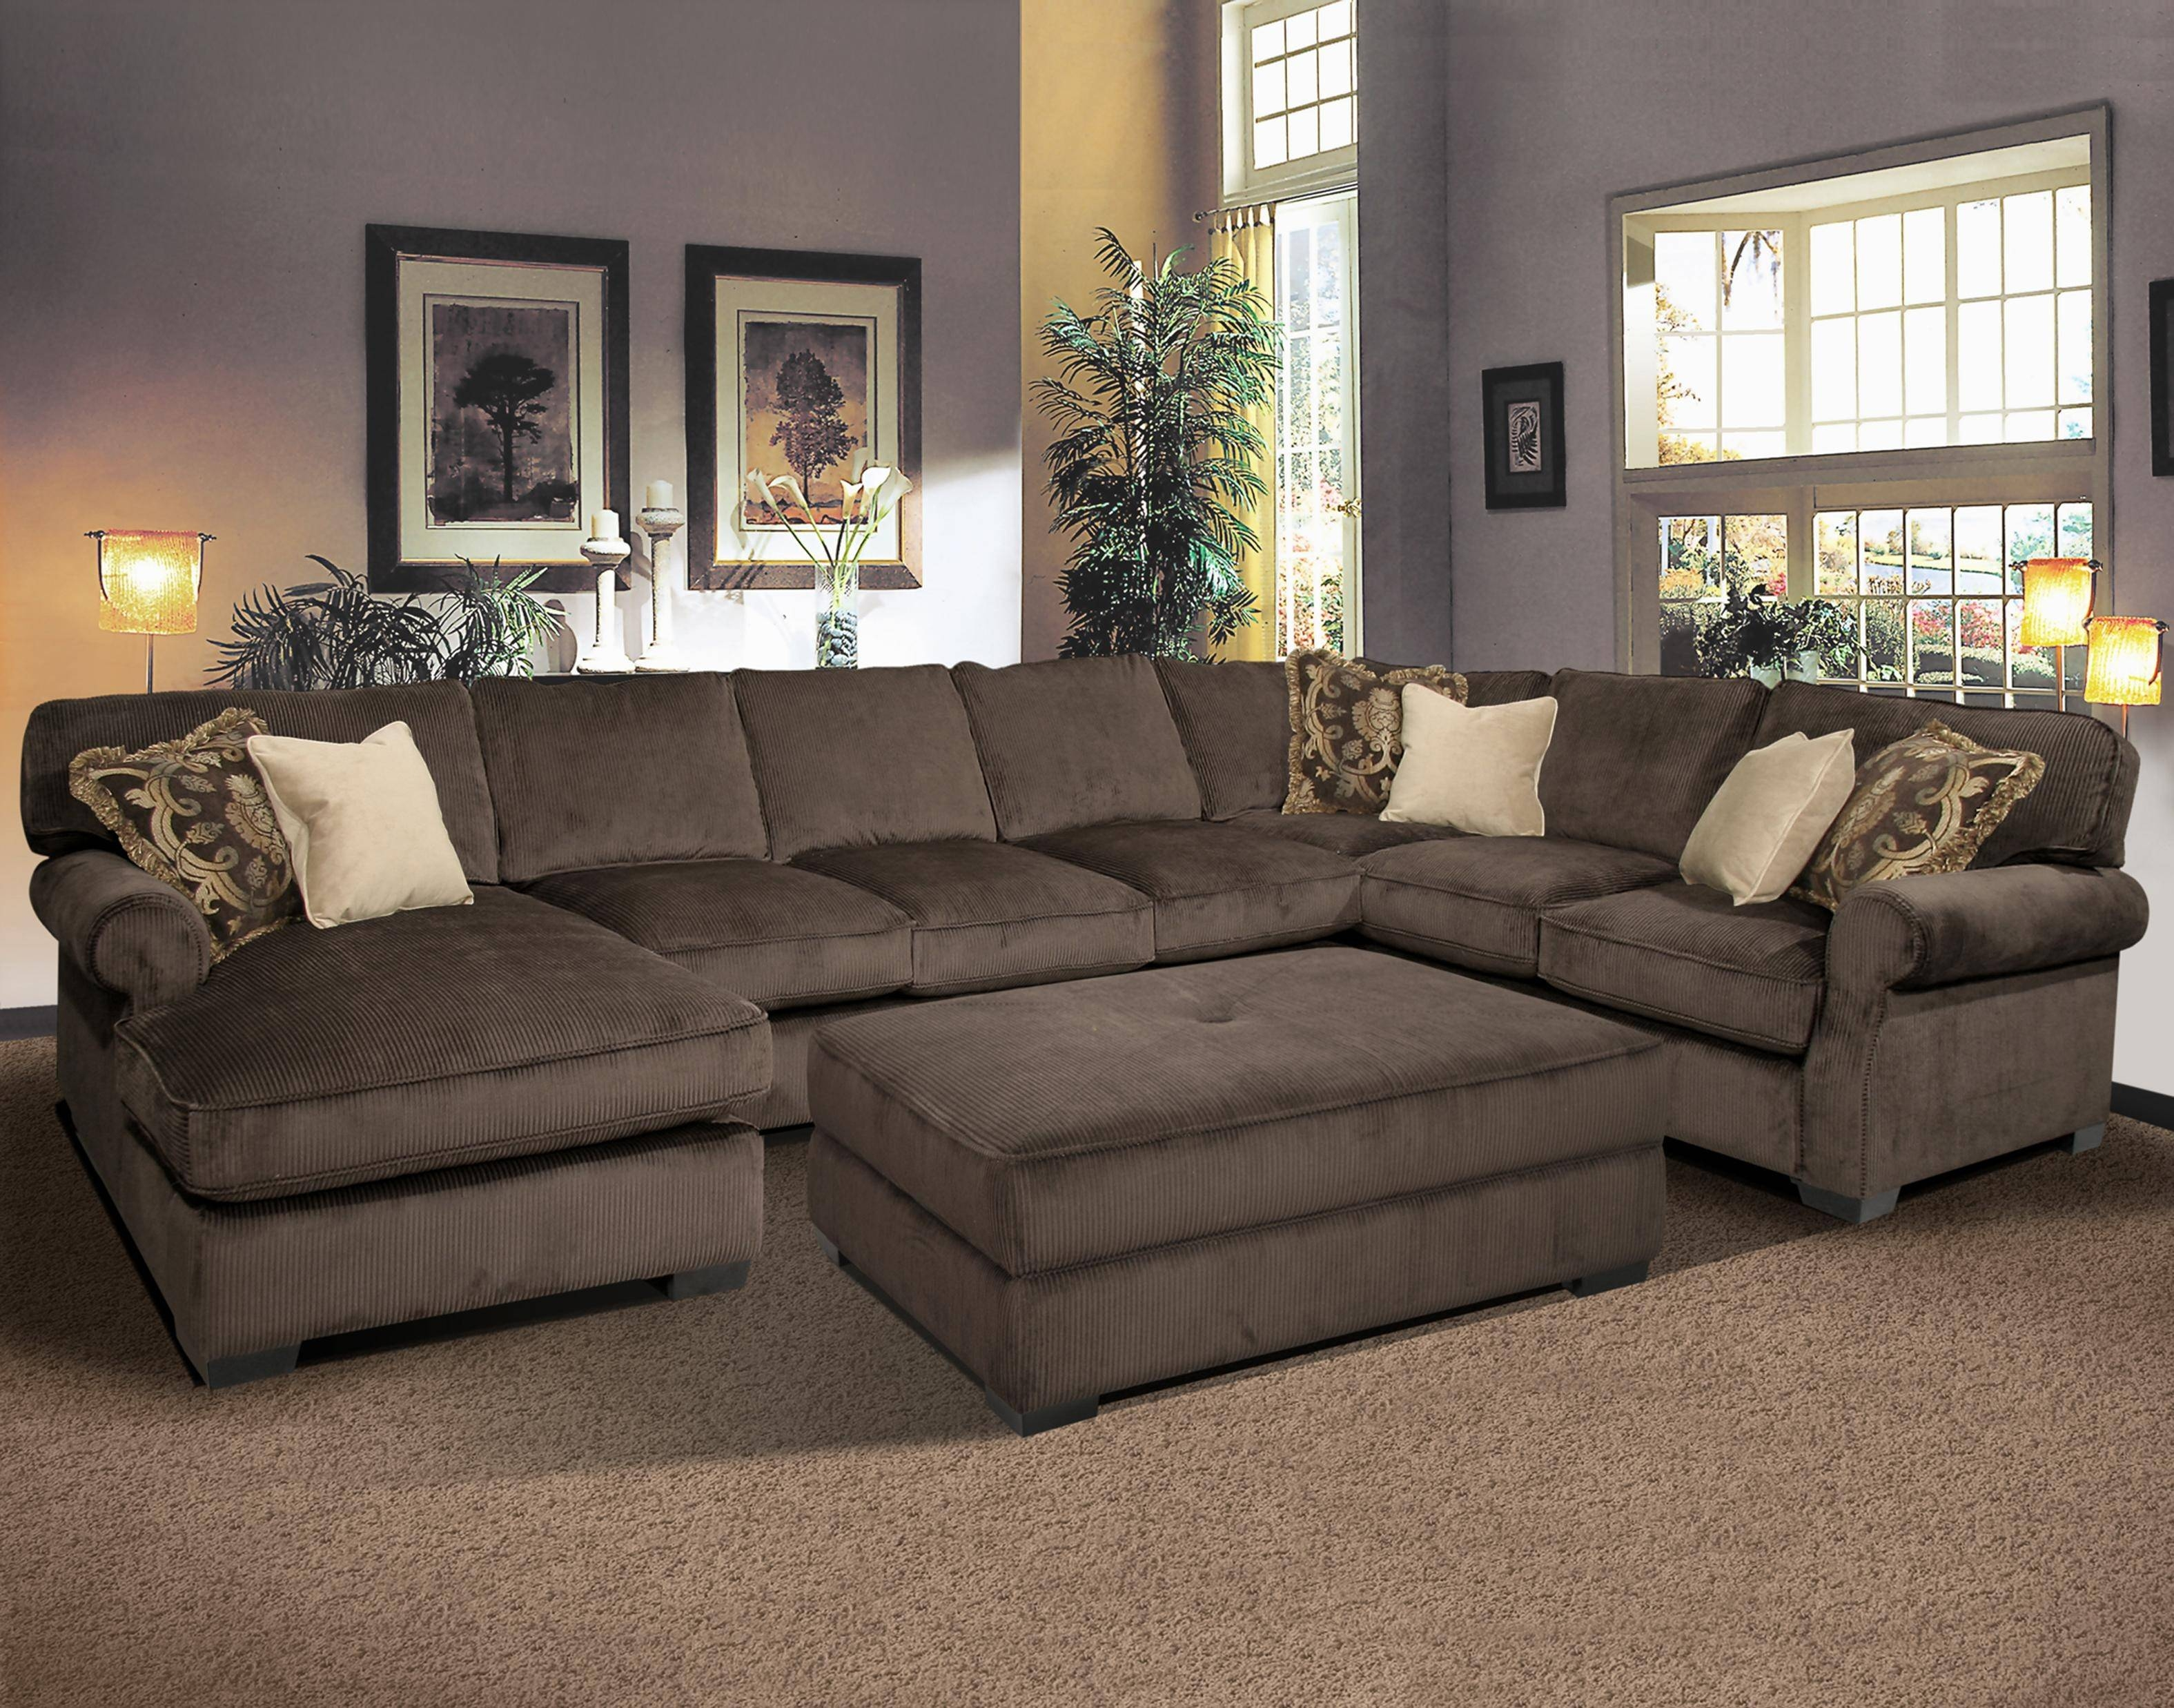 Sofas Center : Usectx8Sp14 Jpg U Shaped Sectional Sofa Outstanding throughout U Shaped Leather Sectional Sofa (Image 22 of 25)